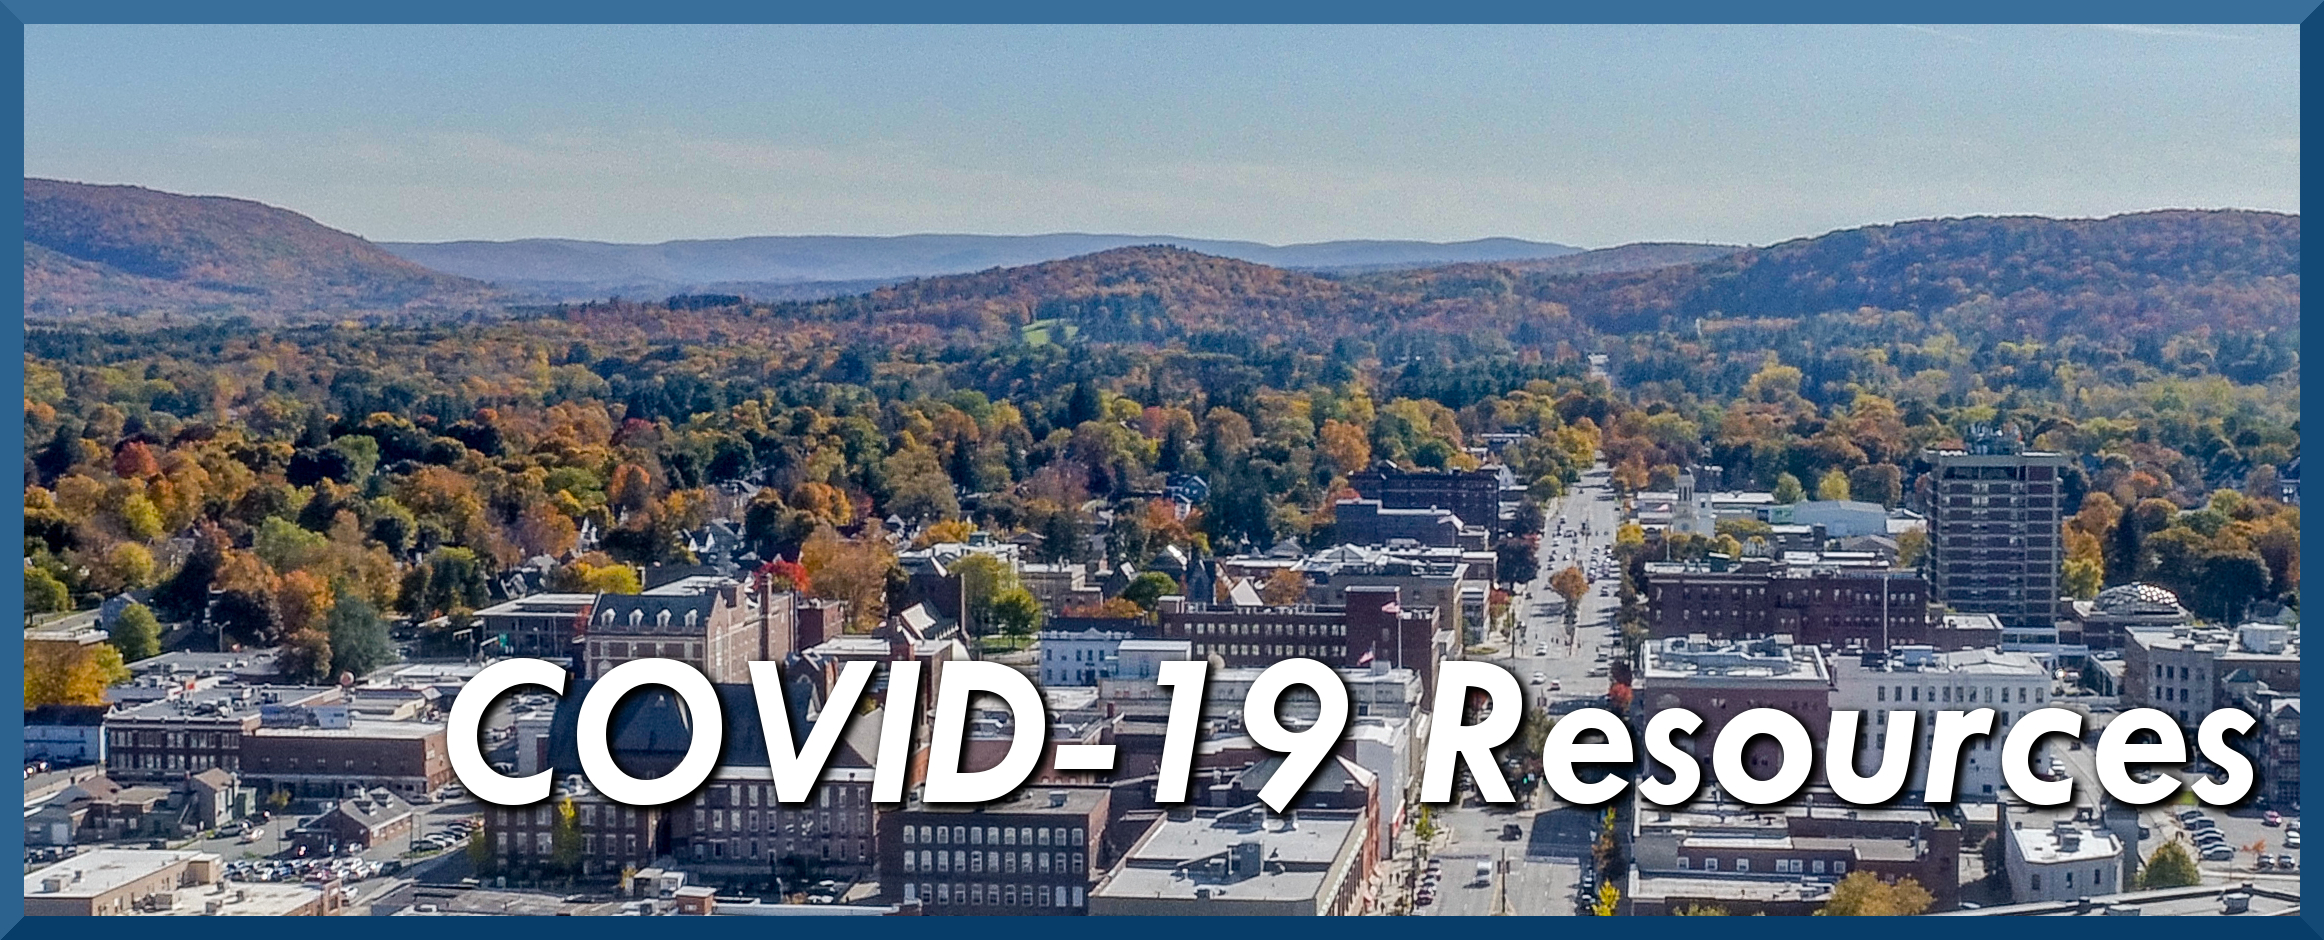 Downtown Pittsfield MA COVID-19 Resources